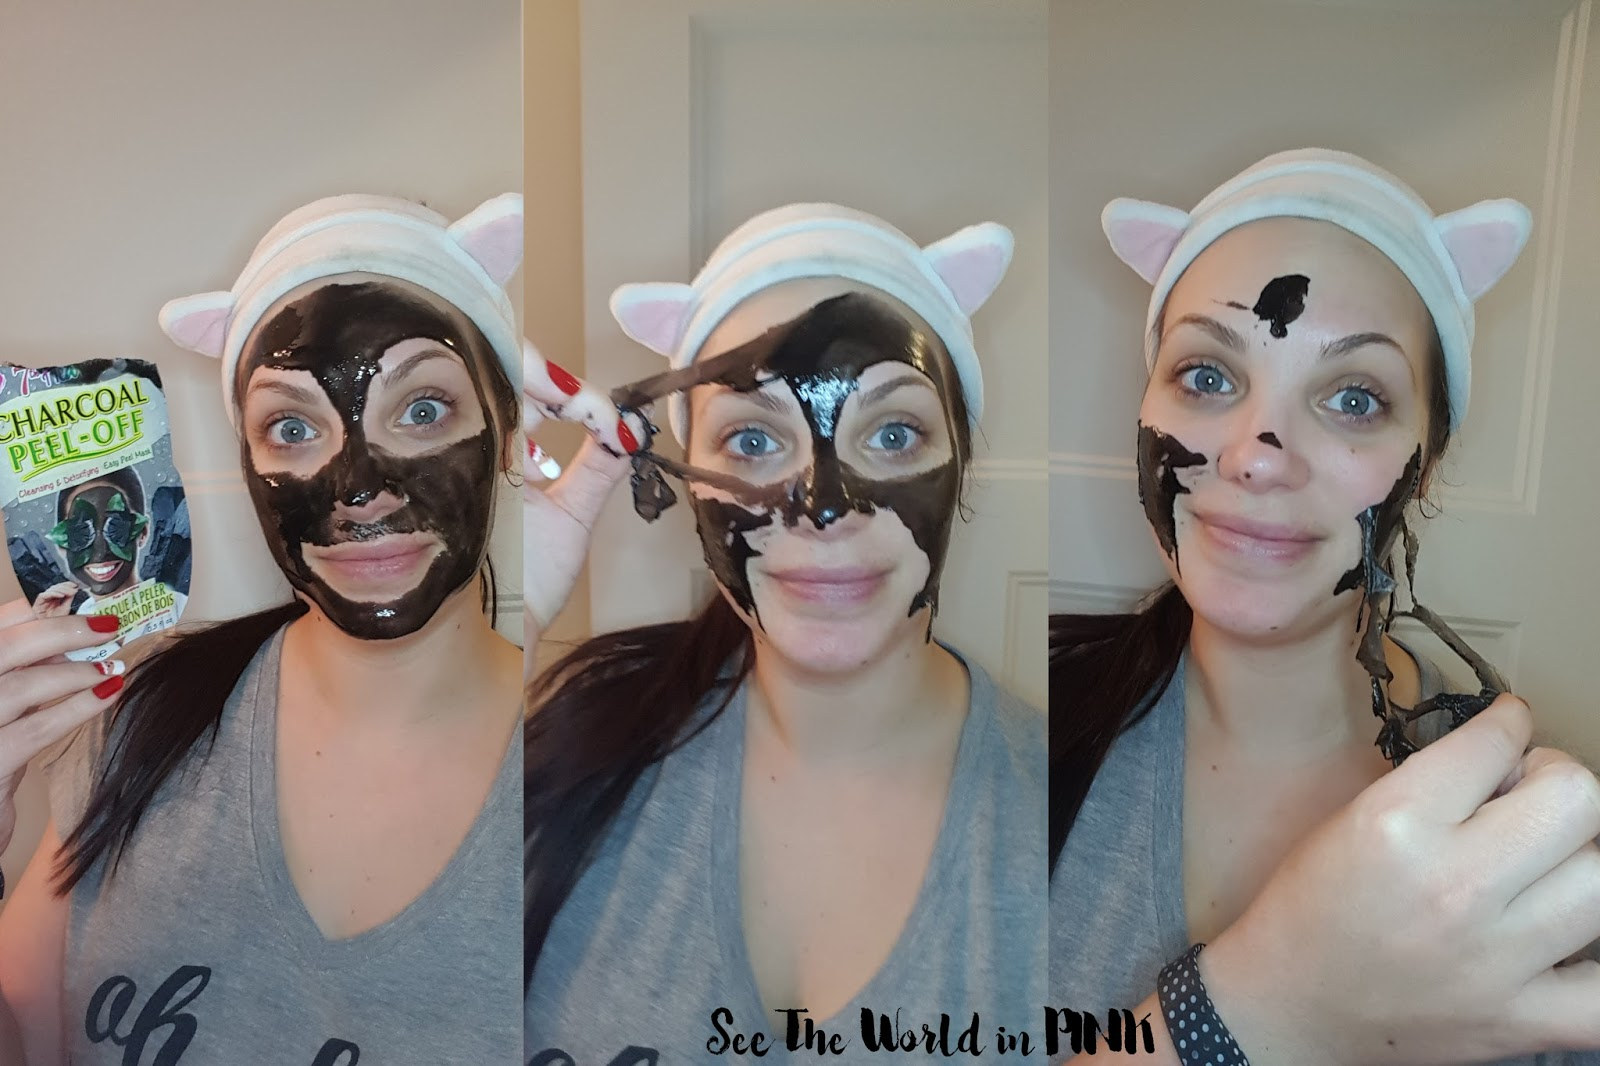 Mask Wednesday - 7th Heaven Charcoal Peel Off Masque Review